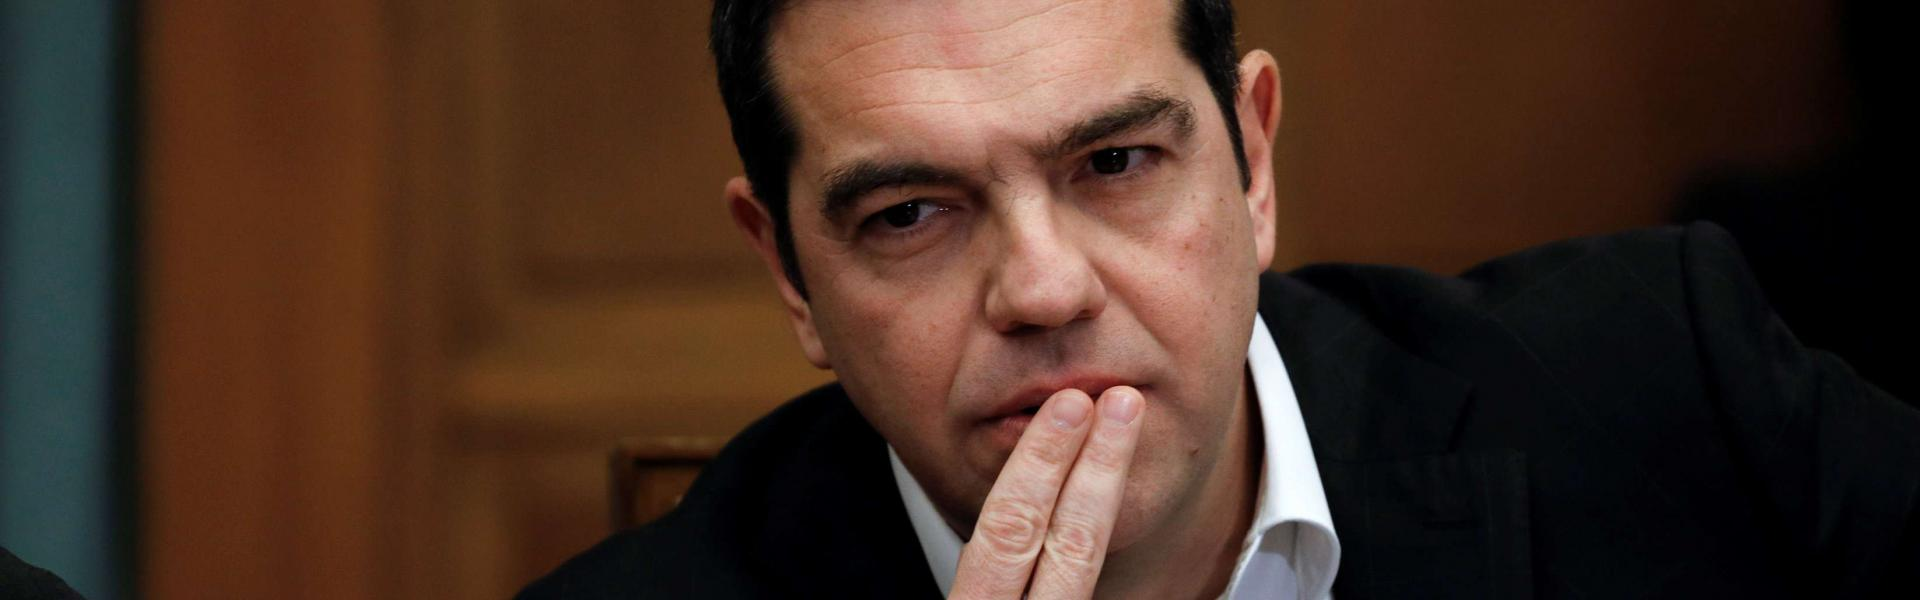 Tsipras wants EU to get tough on Turkey's aggression in E.Med 1